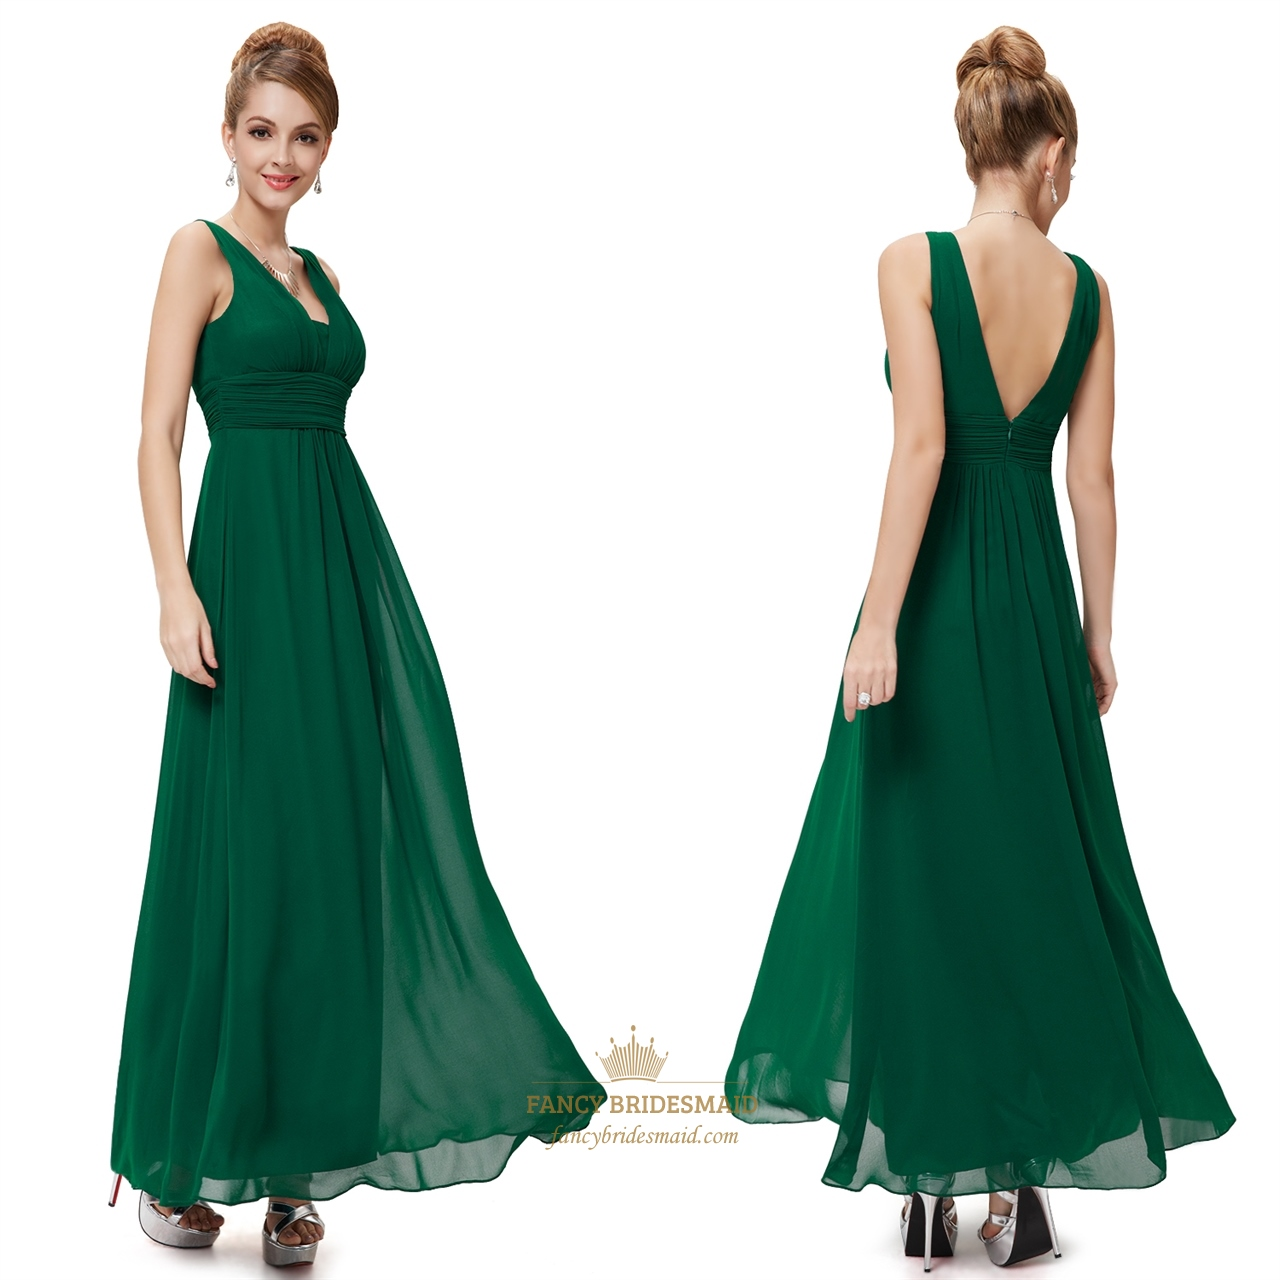 guest dress italy long wedding guest dresses My Italian Wedding The home of Italian weddings with news tips and real wedding stories by Italian brides and wedding planners